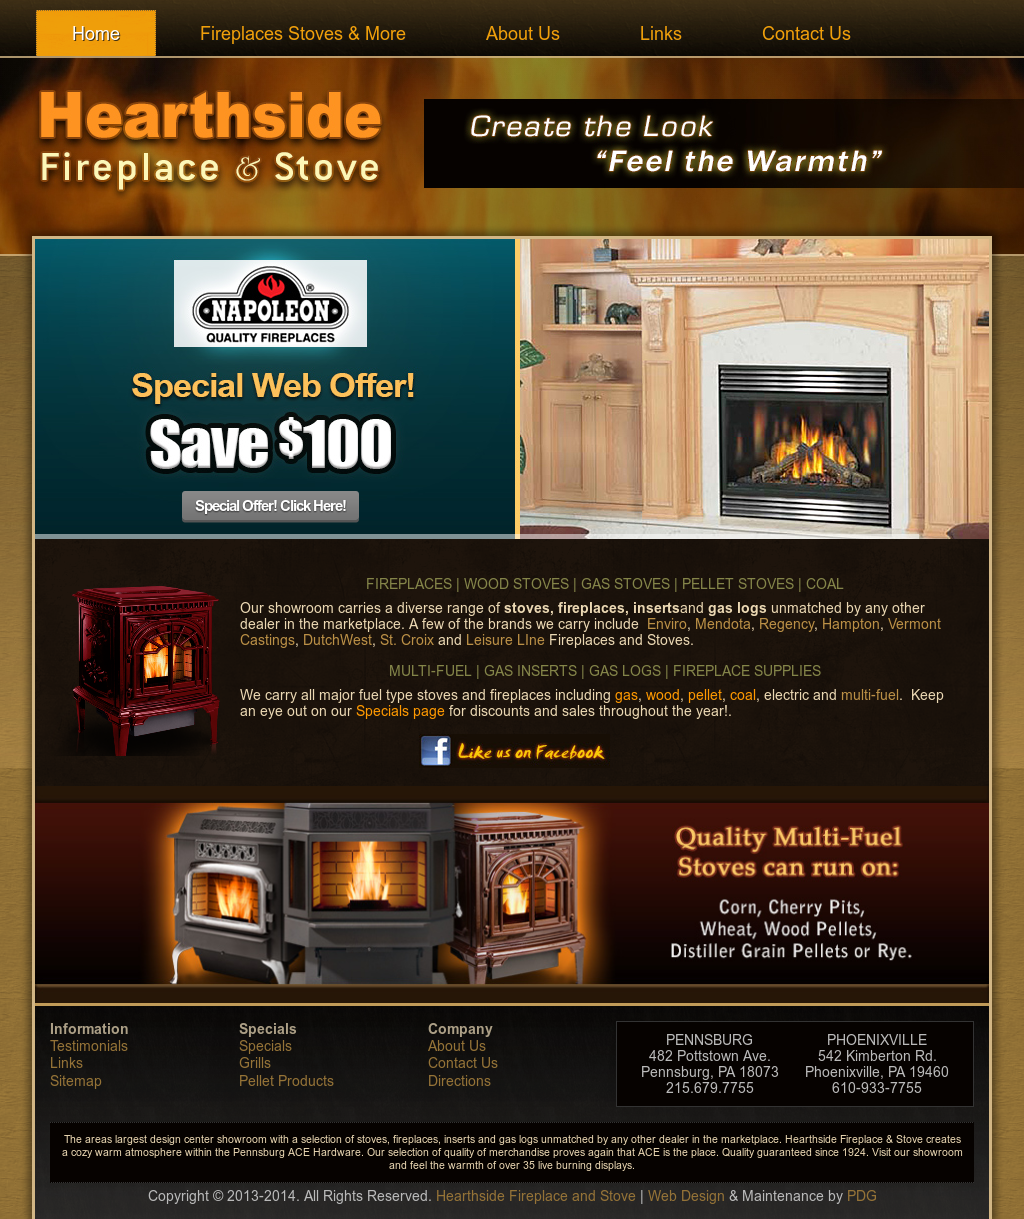 Hearthside Fireplace & Stove Competitors, Revenue and